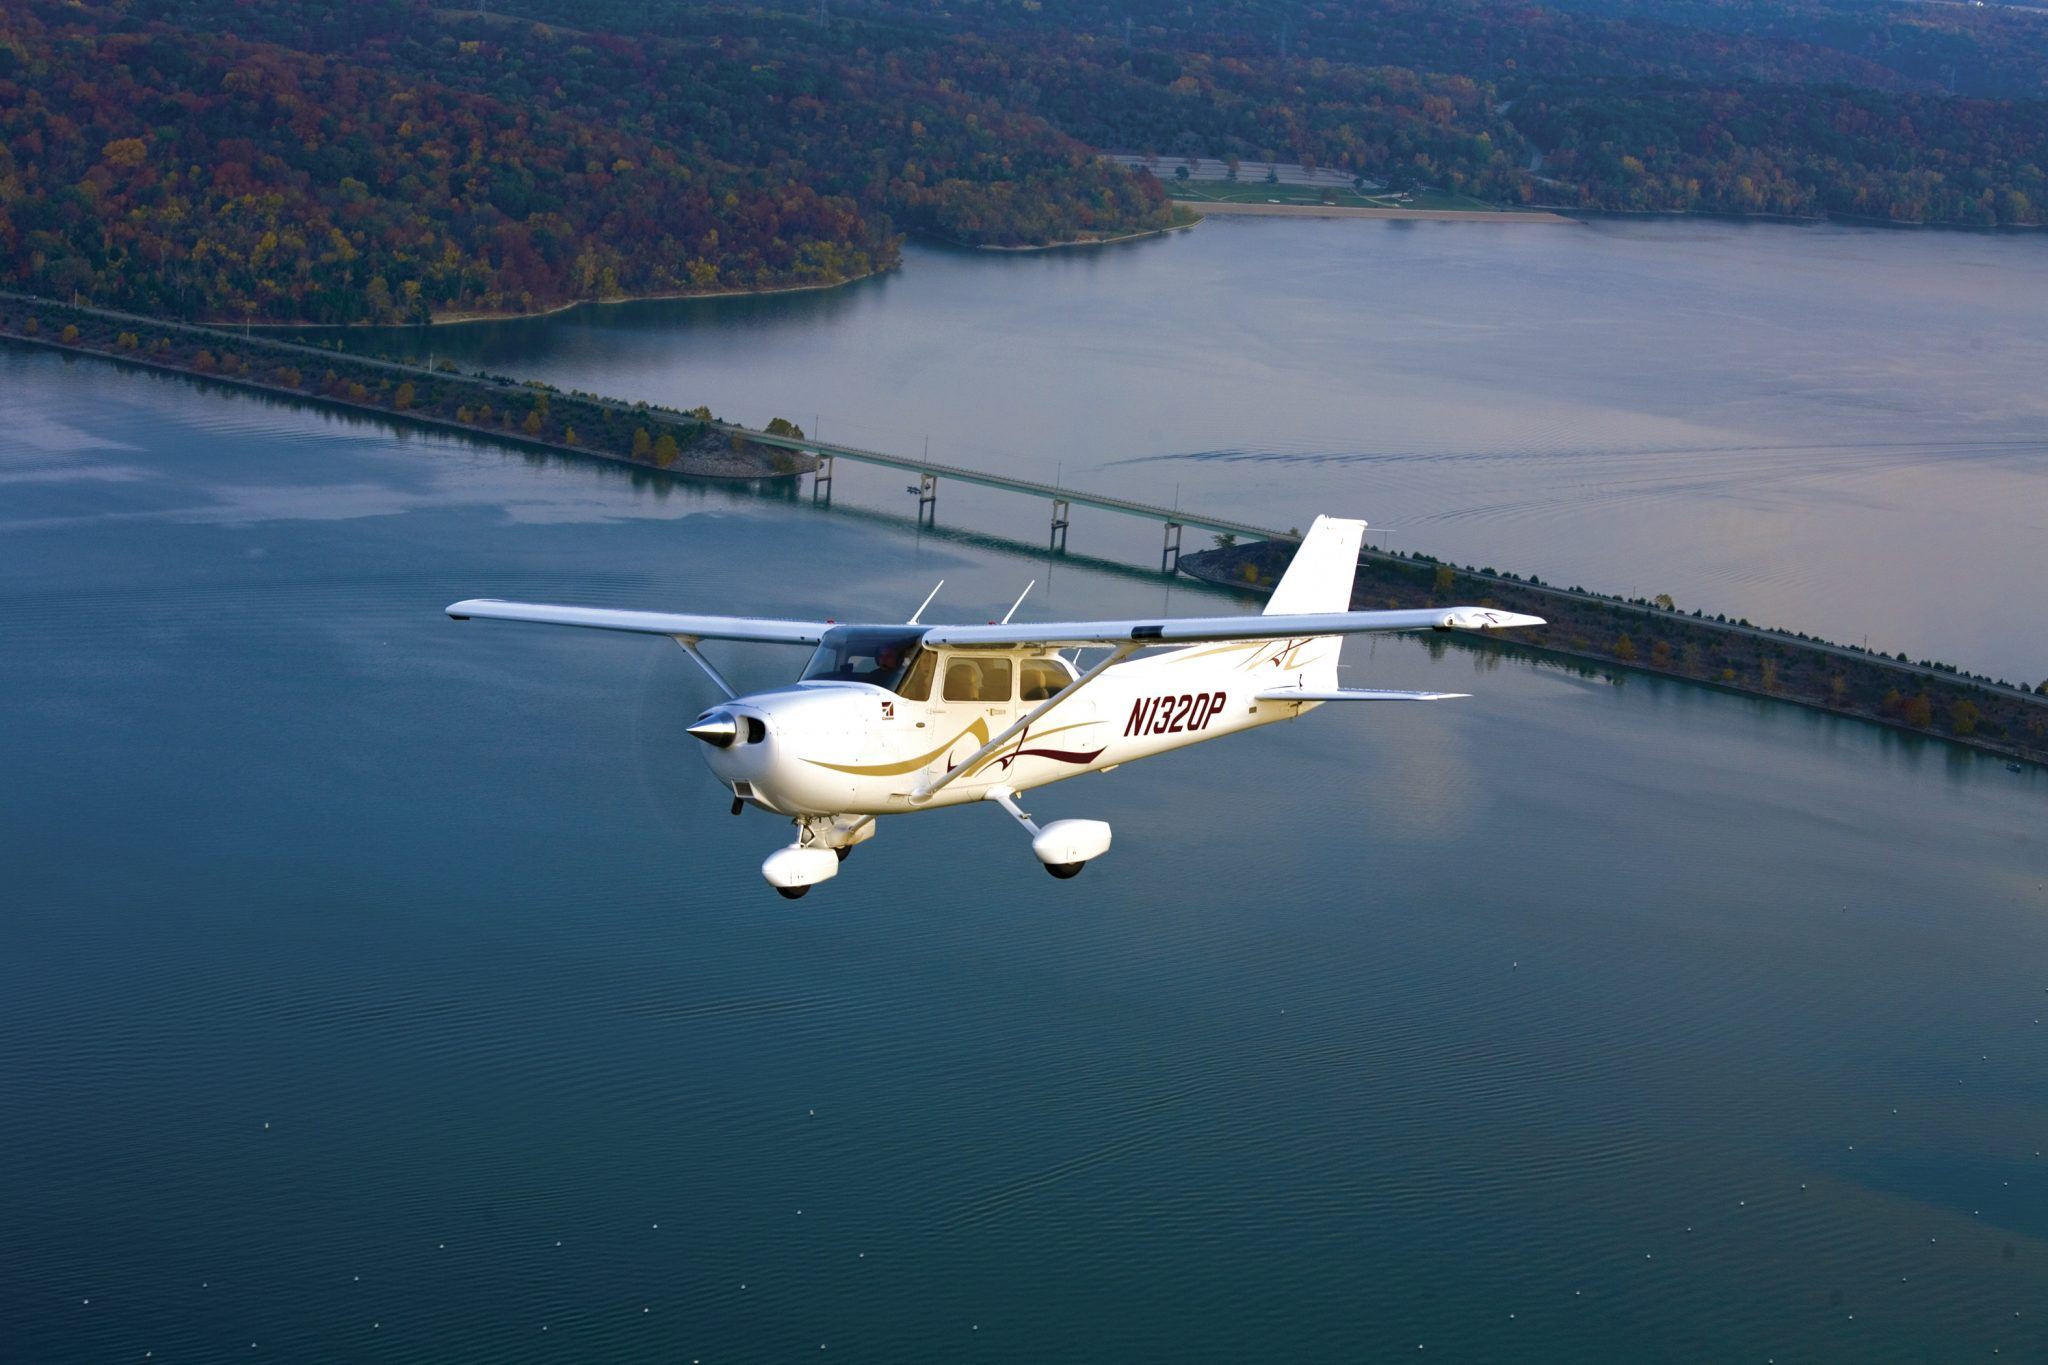 101 Exam Questions and Answers For Student Pilots